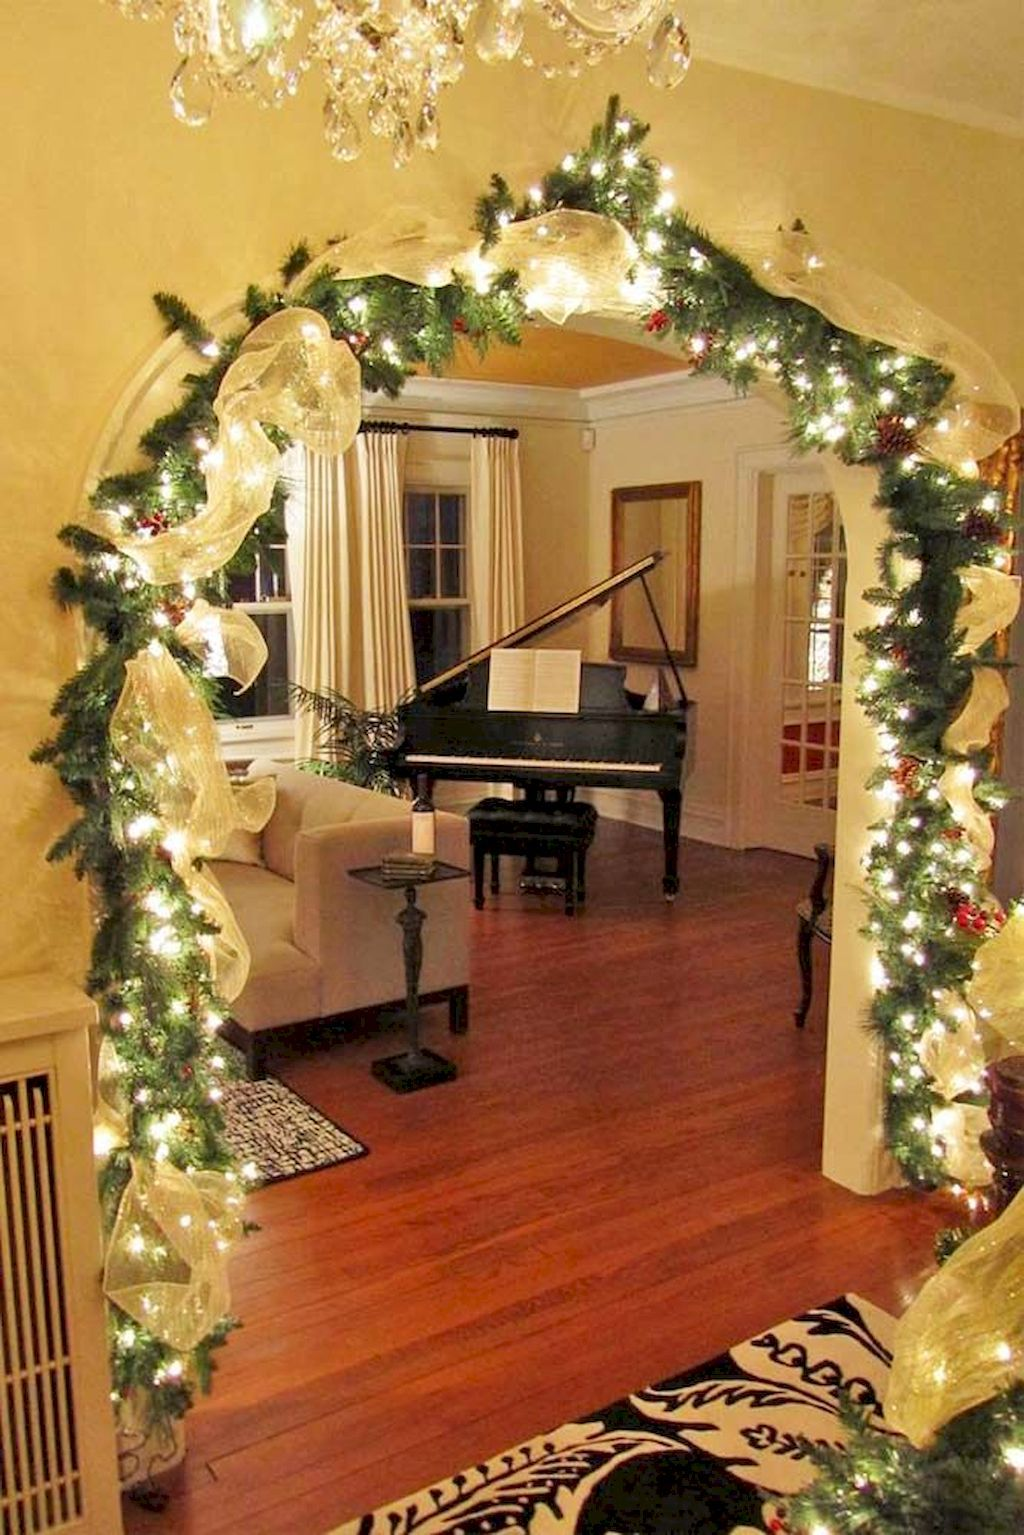 Brilliant Christmas Garland Decorating Ideas Christmas Lights Garland Indoor Christmas Indoor Christmas Decorations